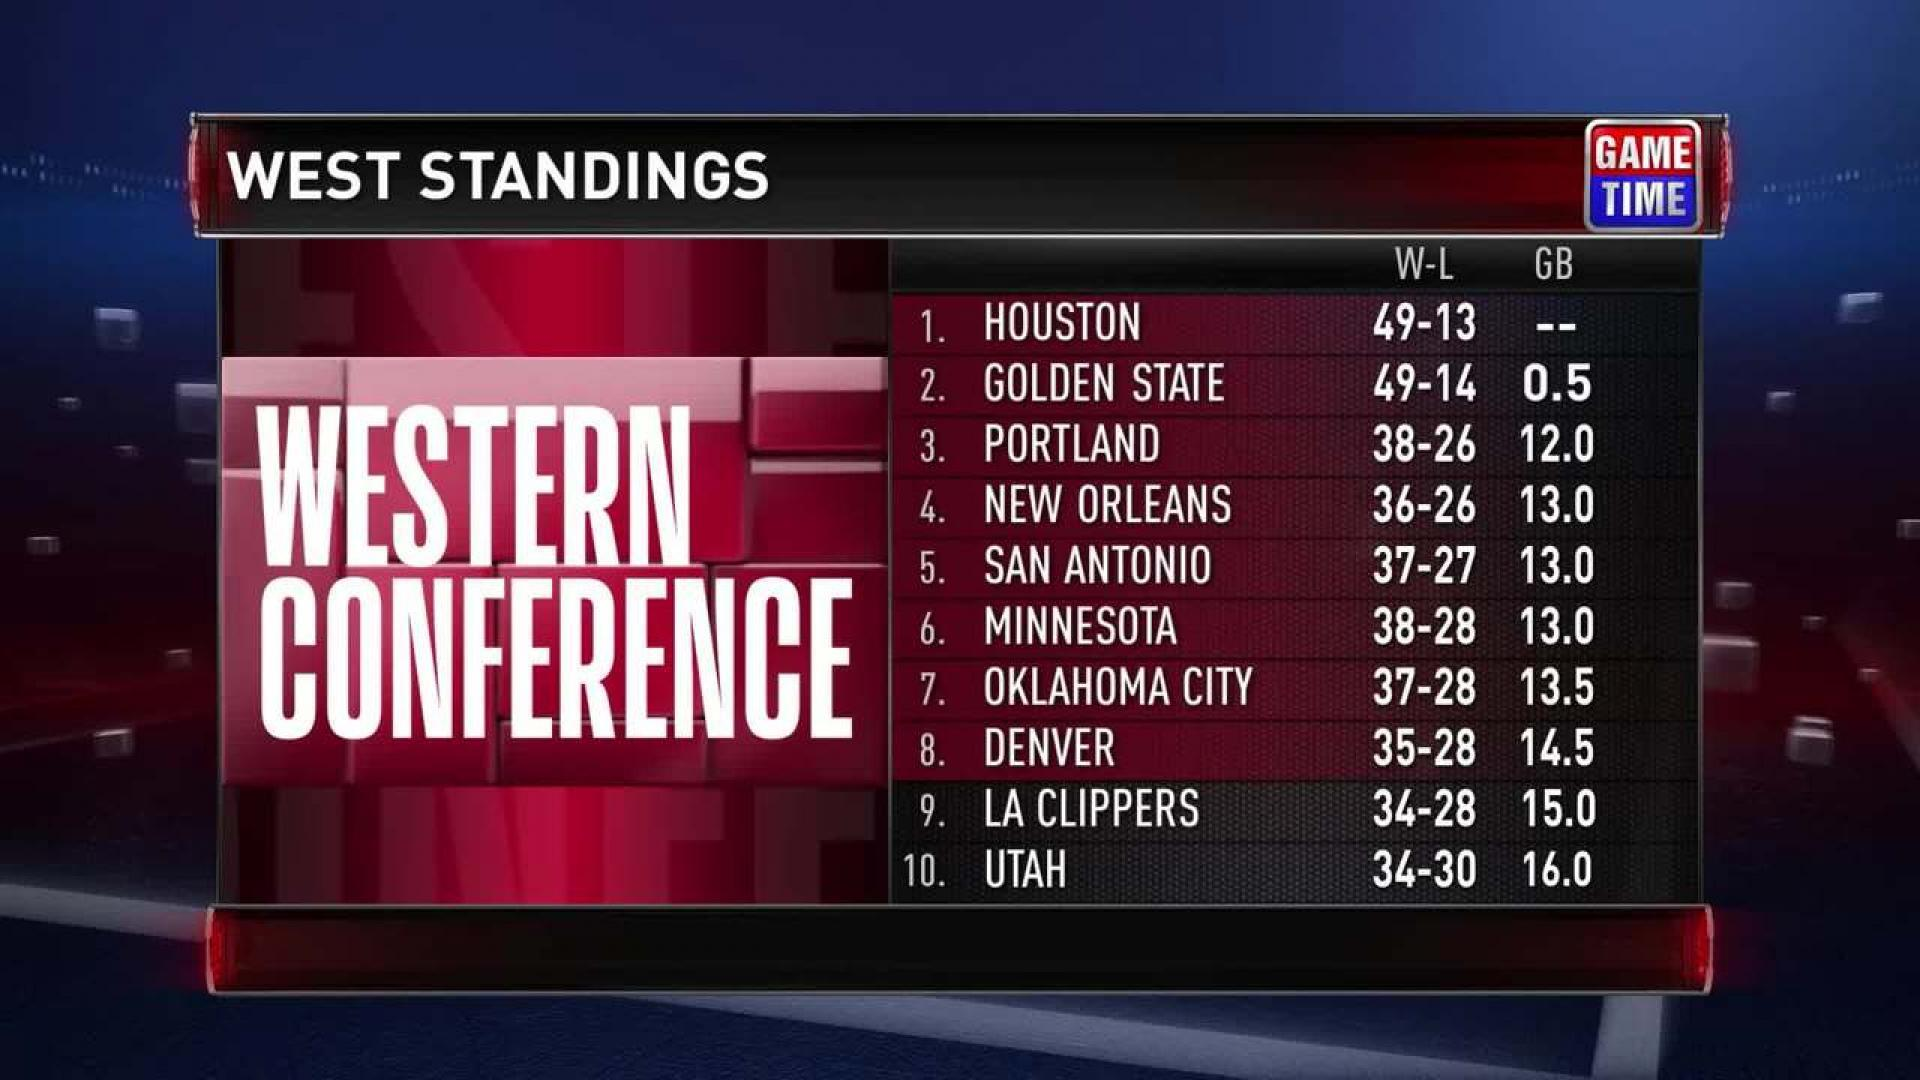 western conference standing